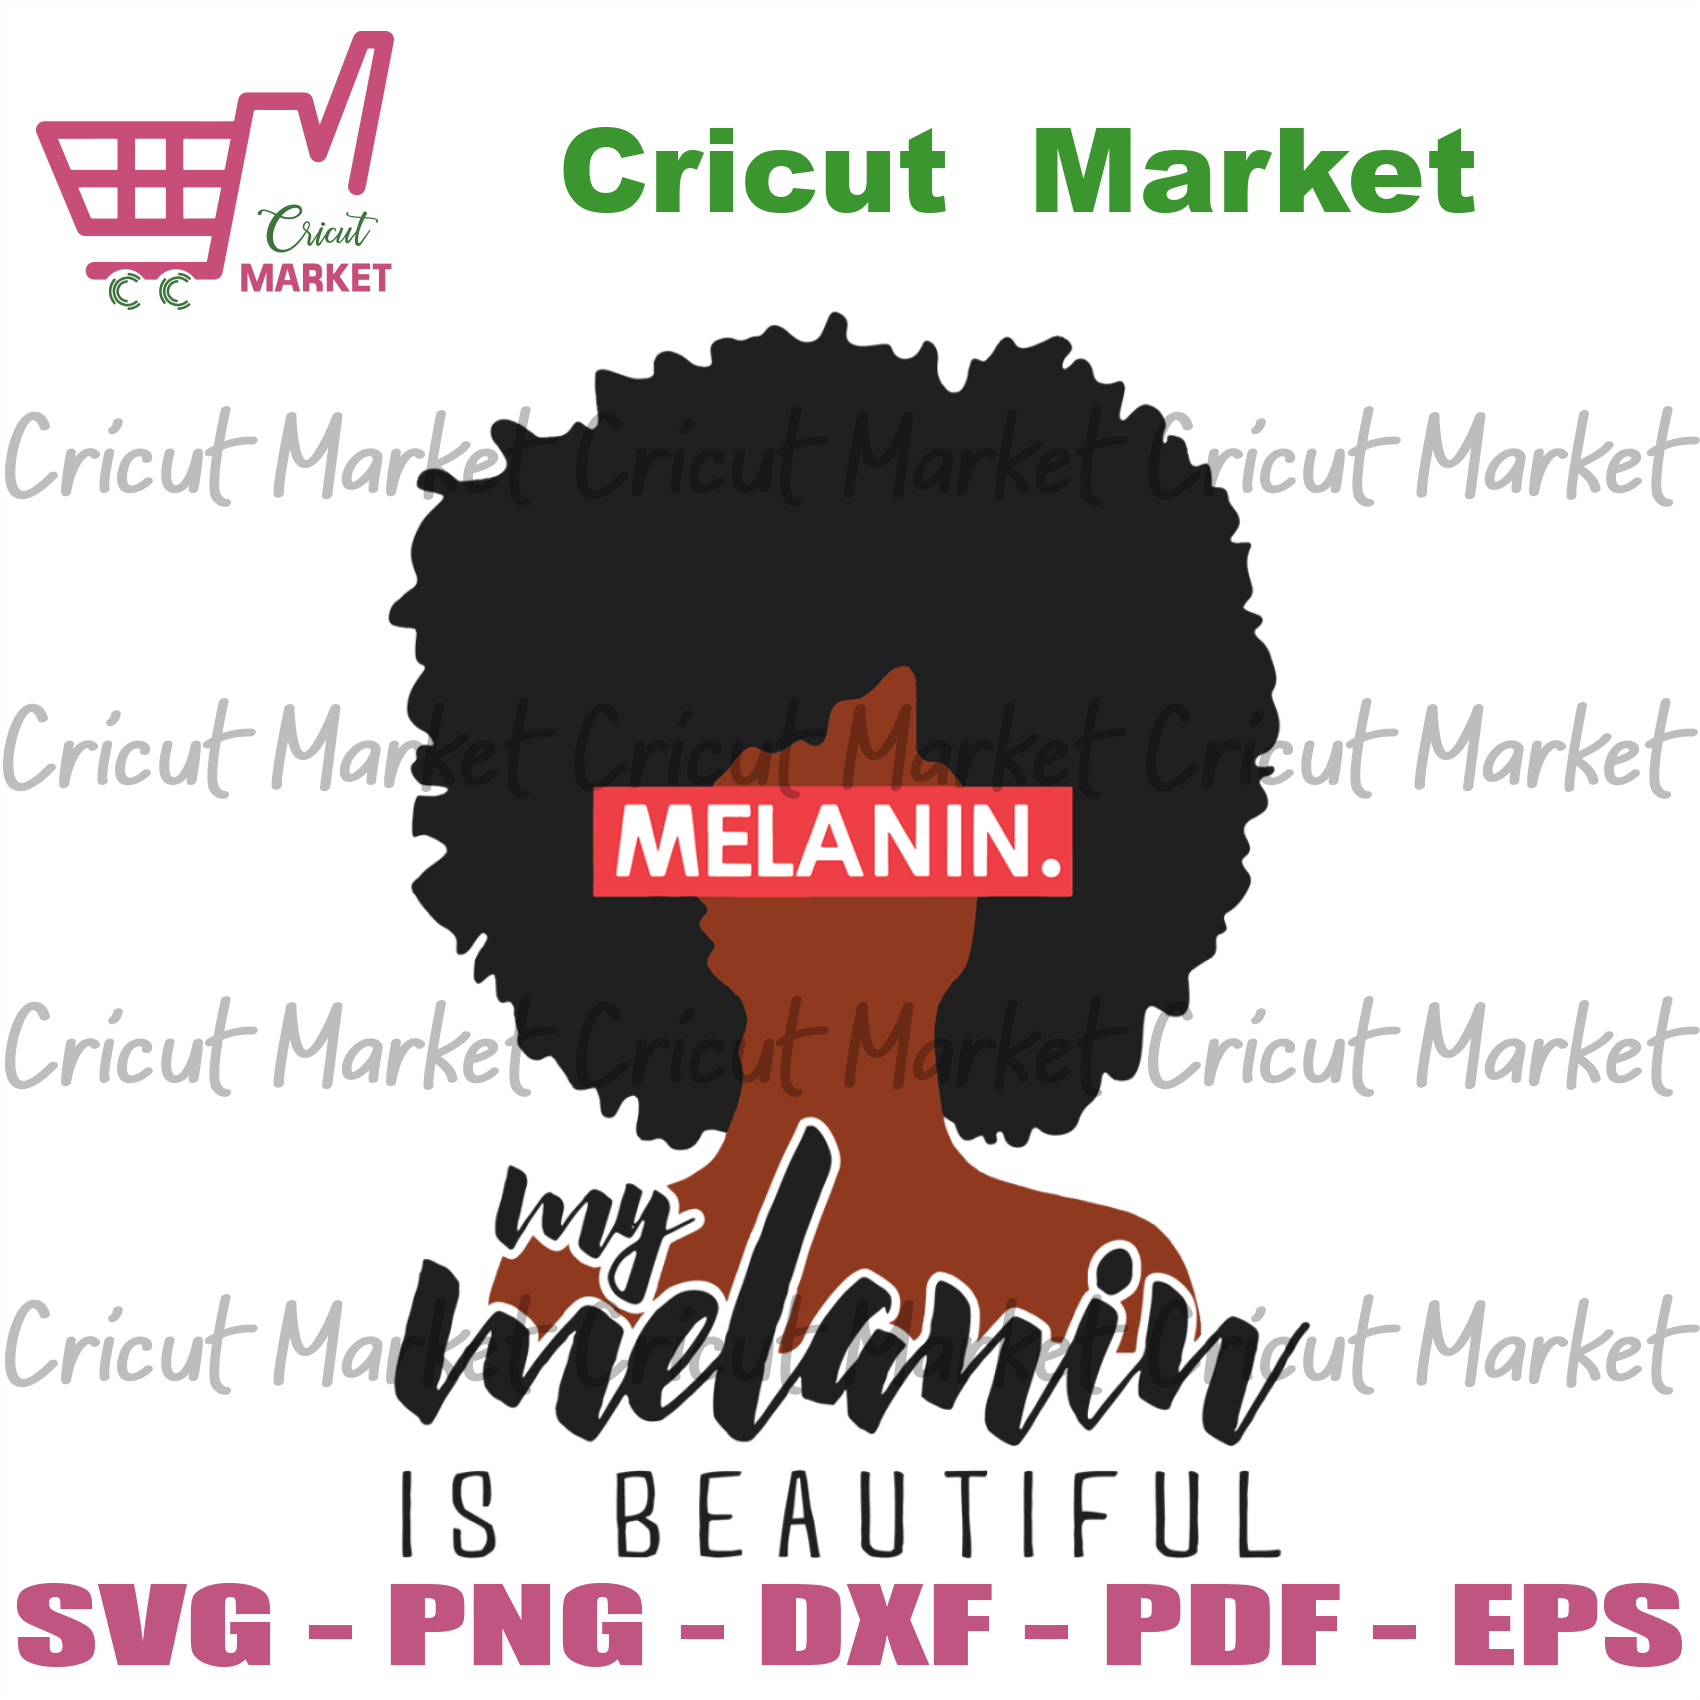 Melanin My Melanin Is Beautiful,Melanin Svg, Melanin Beautiful, Black Girls Magic, Black Woman Svg, Black Queen Svg, Black Woman, Black History Svg, Black Girls Svg, Melanin Queen Svg - Cricu